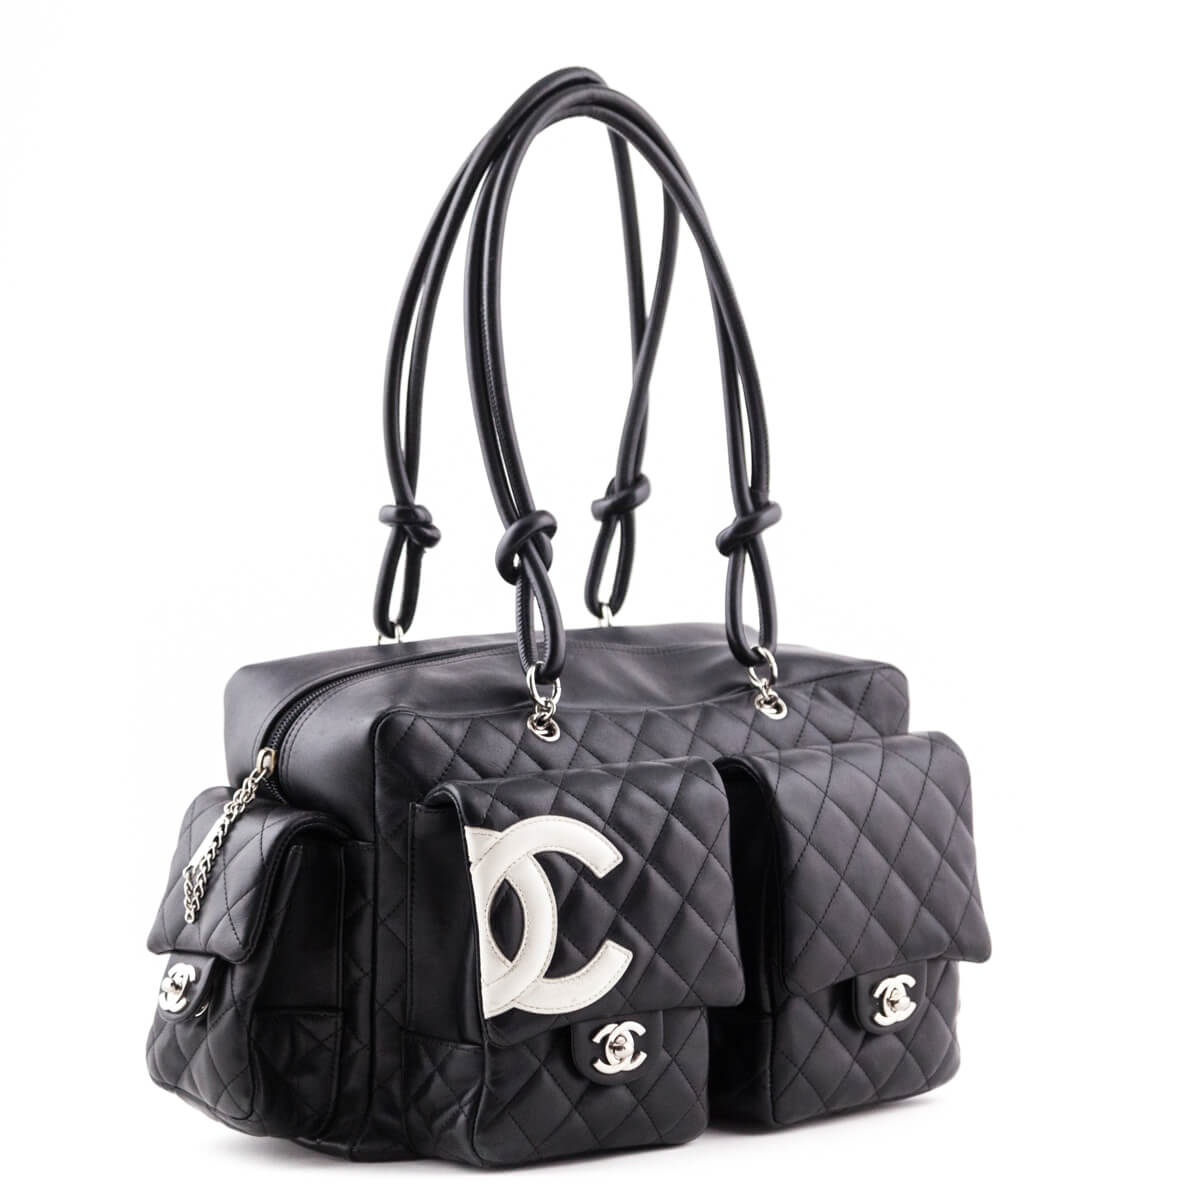 f55f57695886 ... Chanel Black Lambskin Quilted Cambon Pocket Tote - LOVE that BAG -  Preowned Authentic Designer Handbags ...